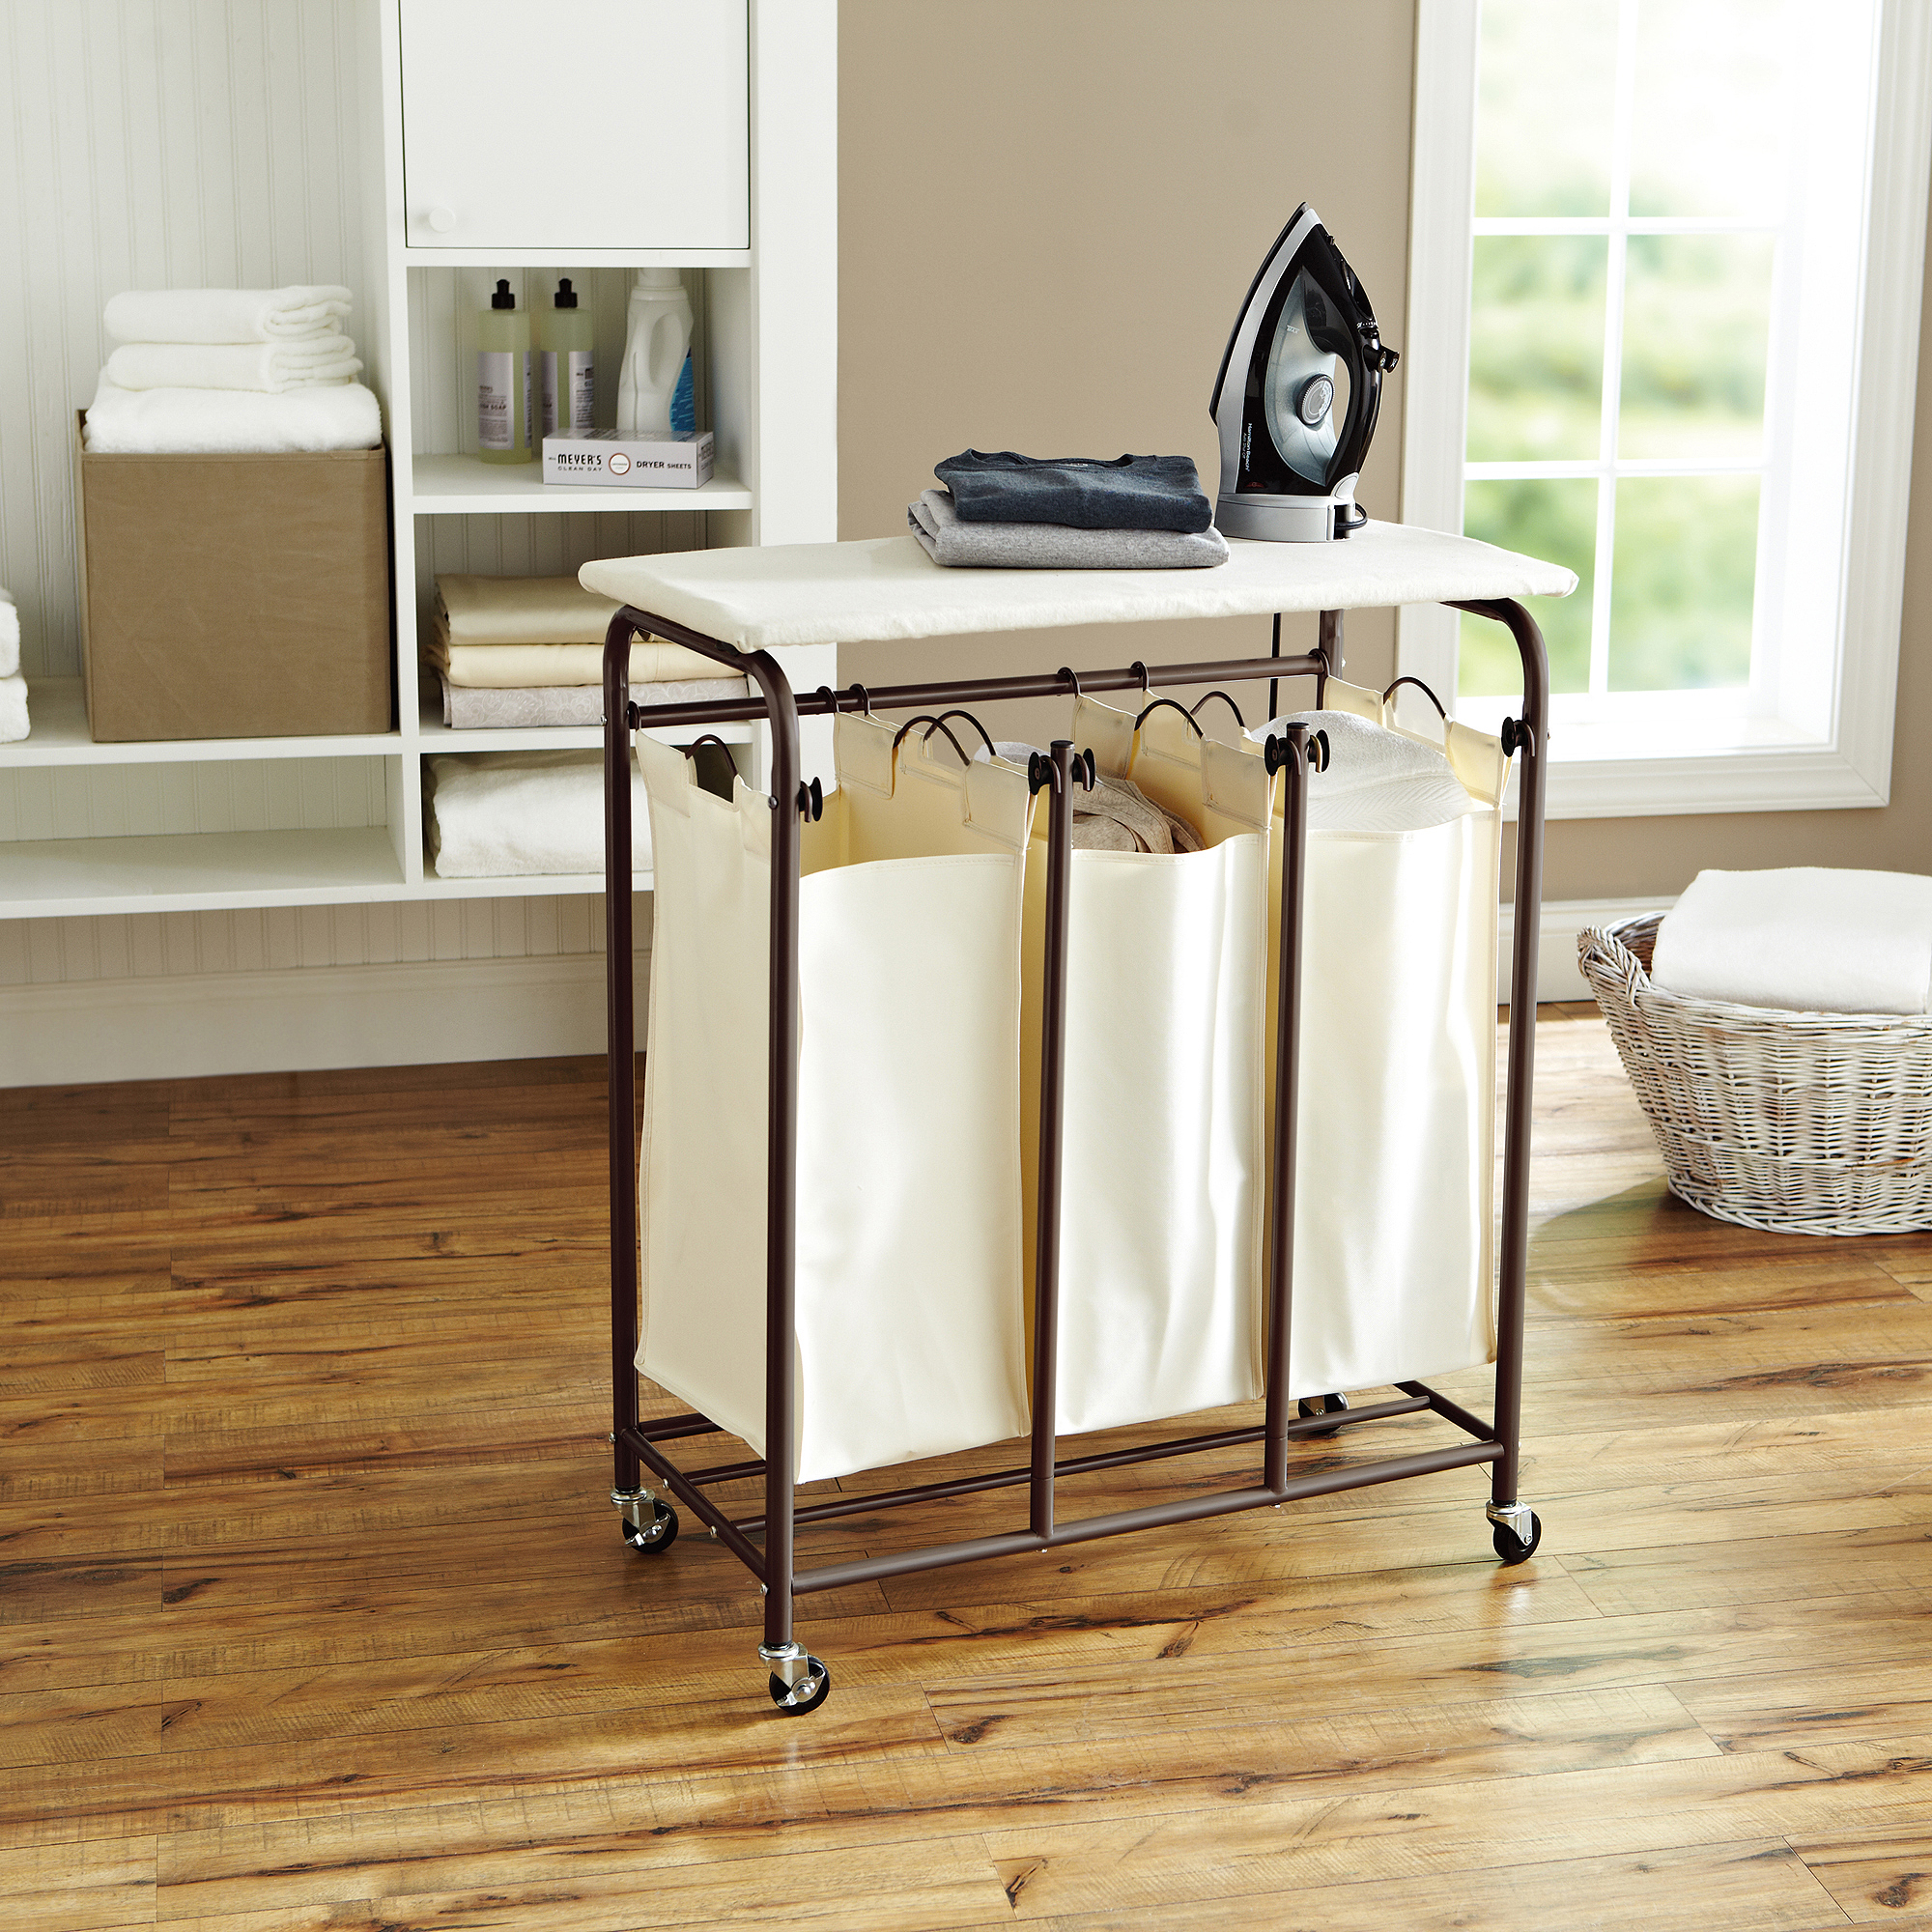 Better Homes and Gardens 3-Compartment Sorting and Ironing System, Brown/Ivory